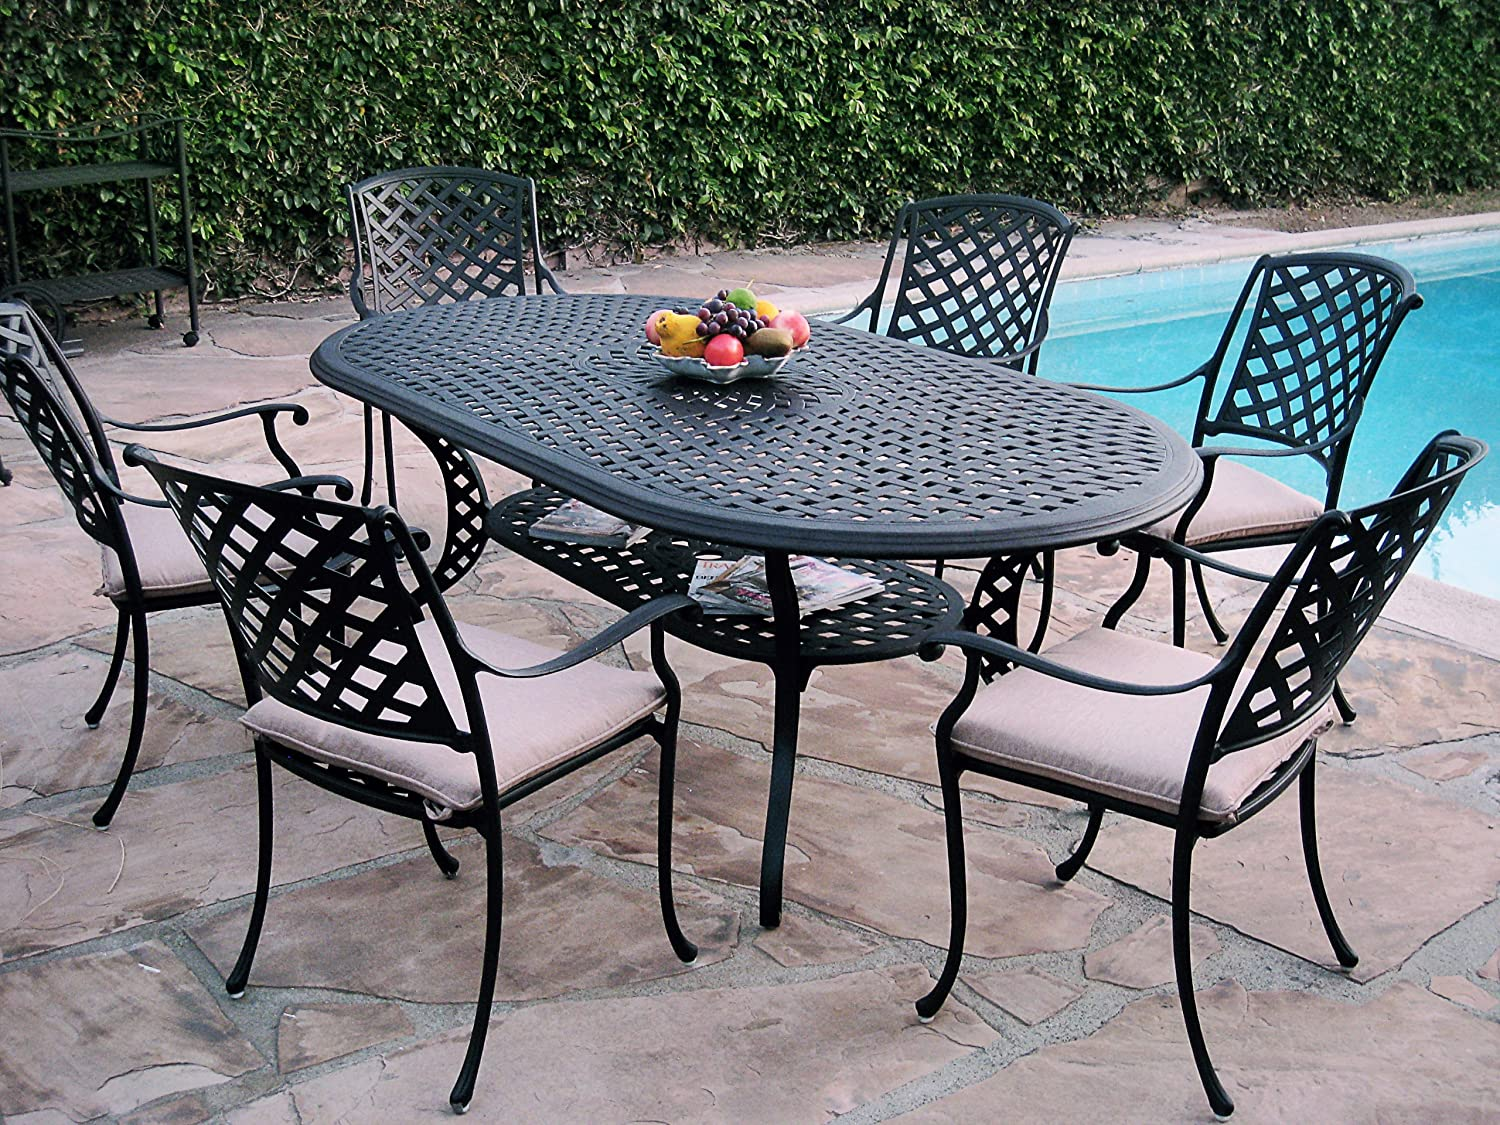 7 Piece Outdoor Patio Furniture Cast Aluminum Dining Set KO with 6 Arm Chairs